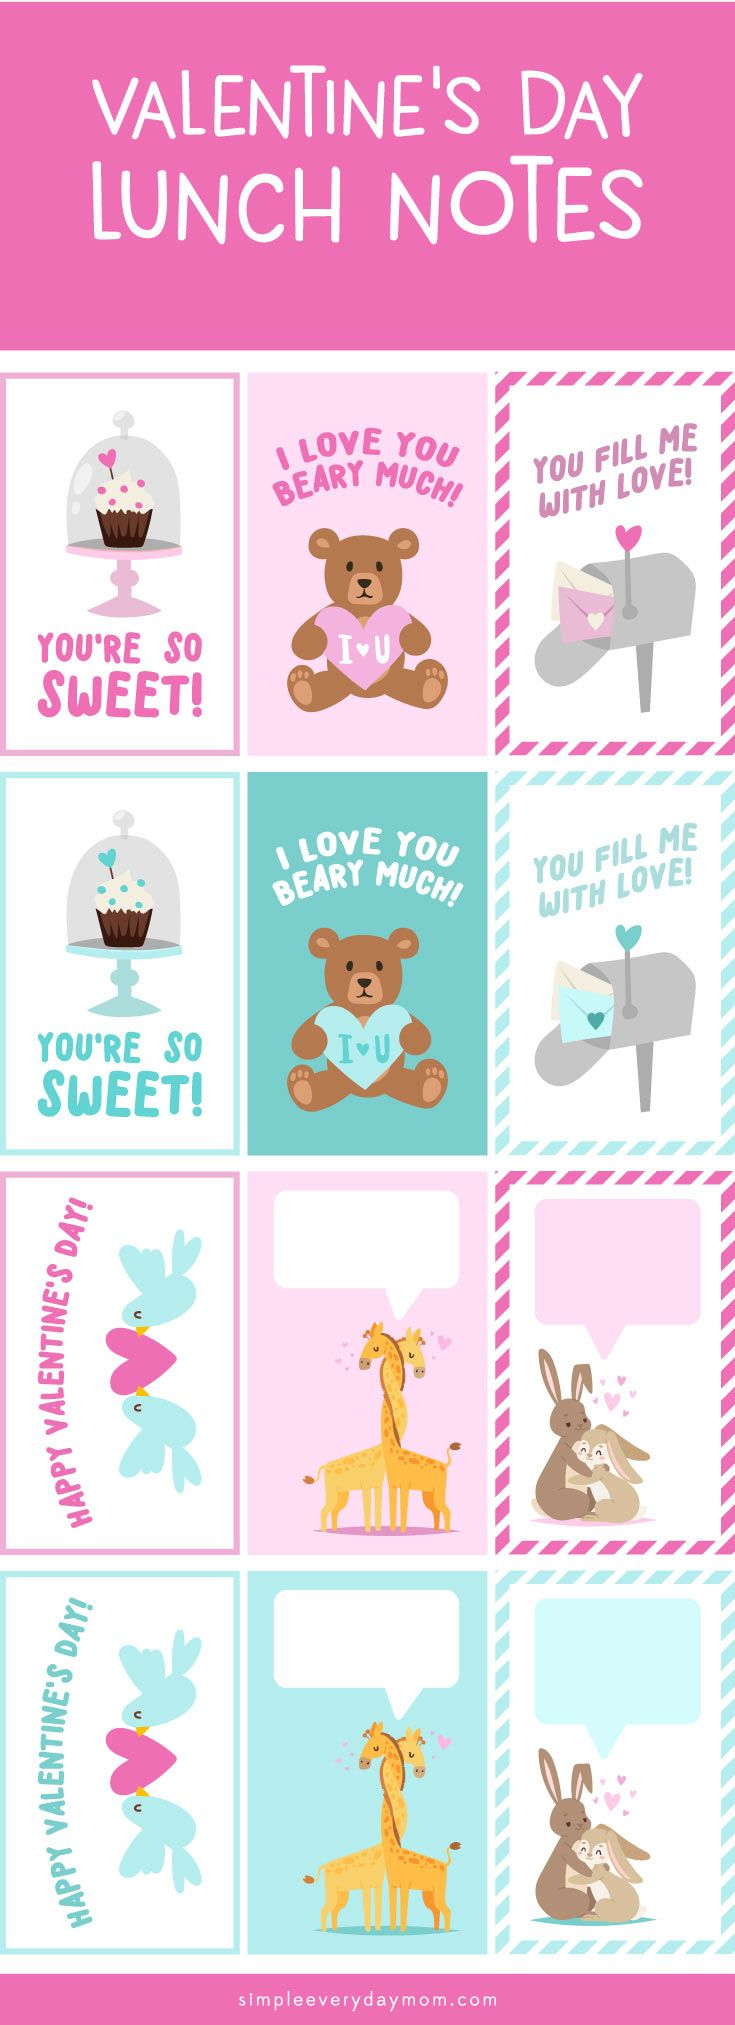 Printable Valentines Lunch Notes for kids | Send a little extra love ...